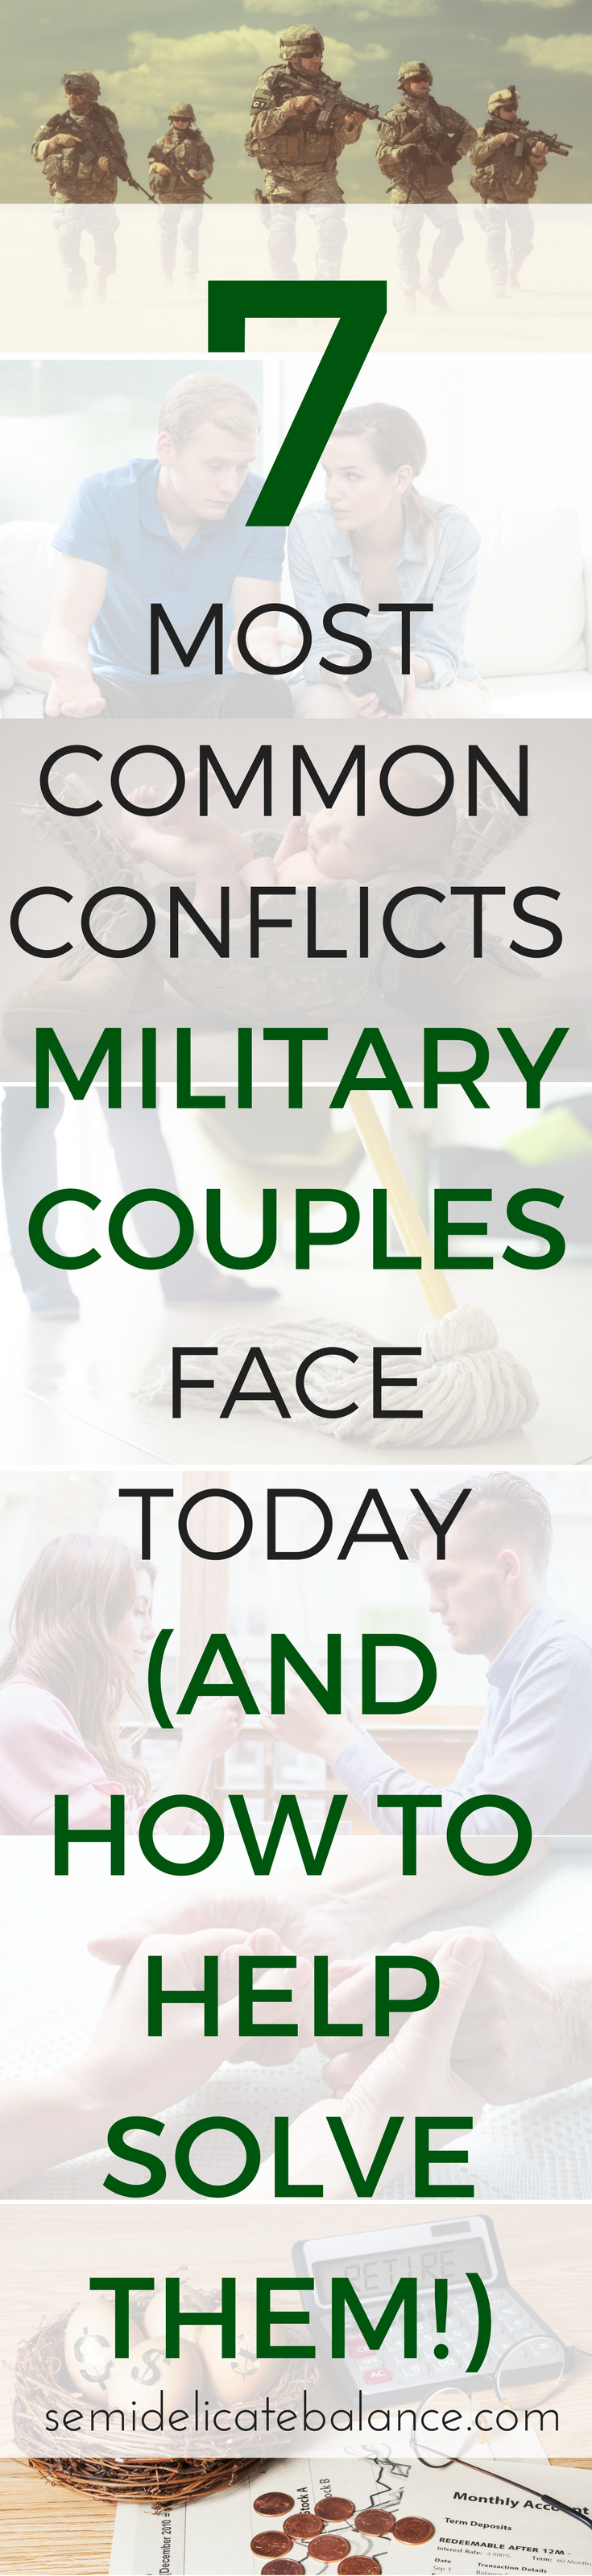 most-common-conflicts-military-couples-face-and-how-to-solve-them